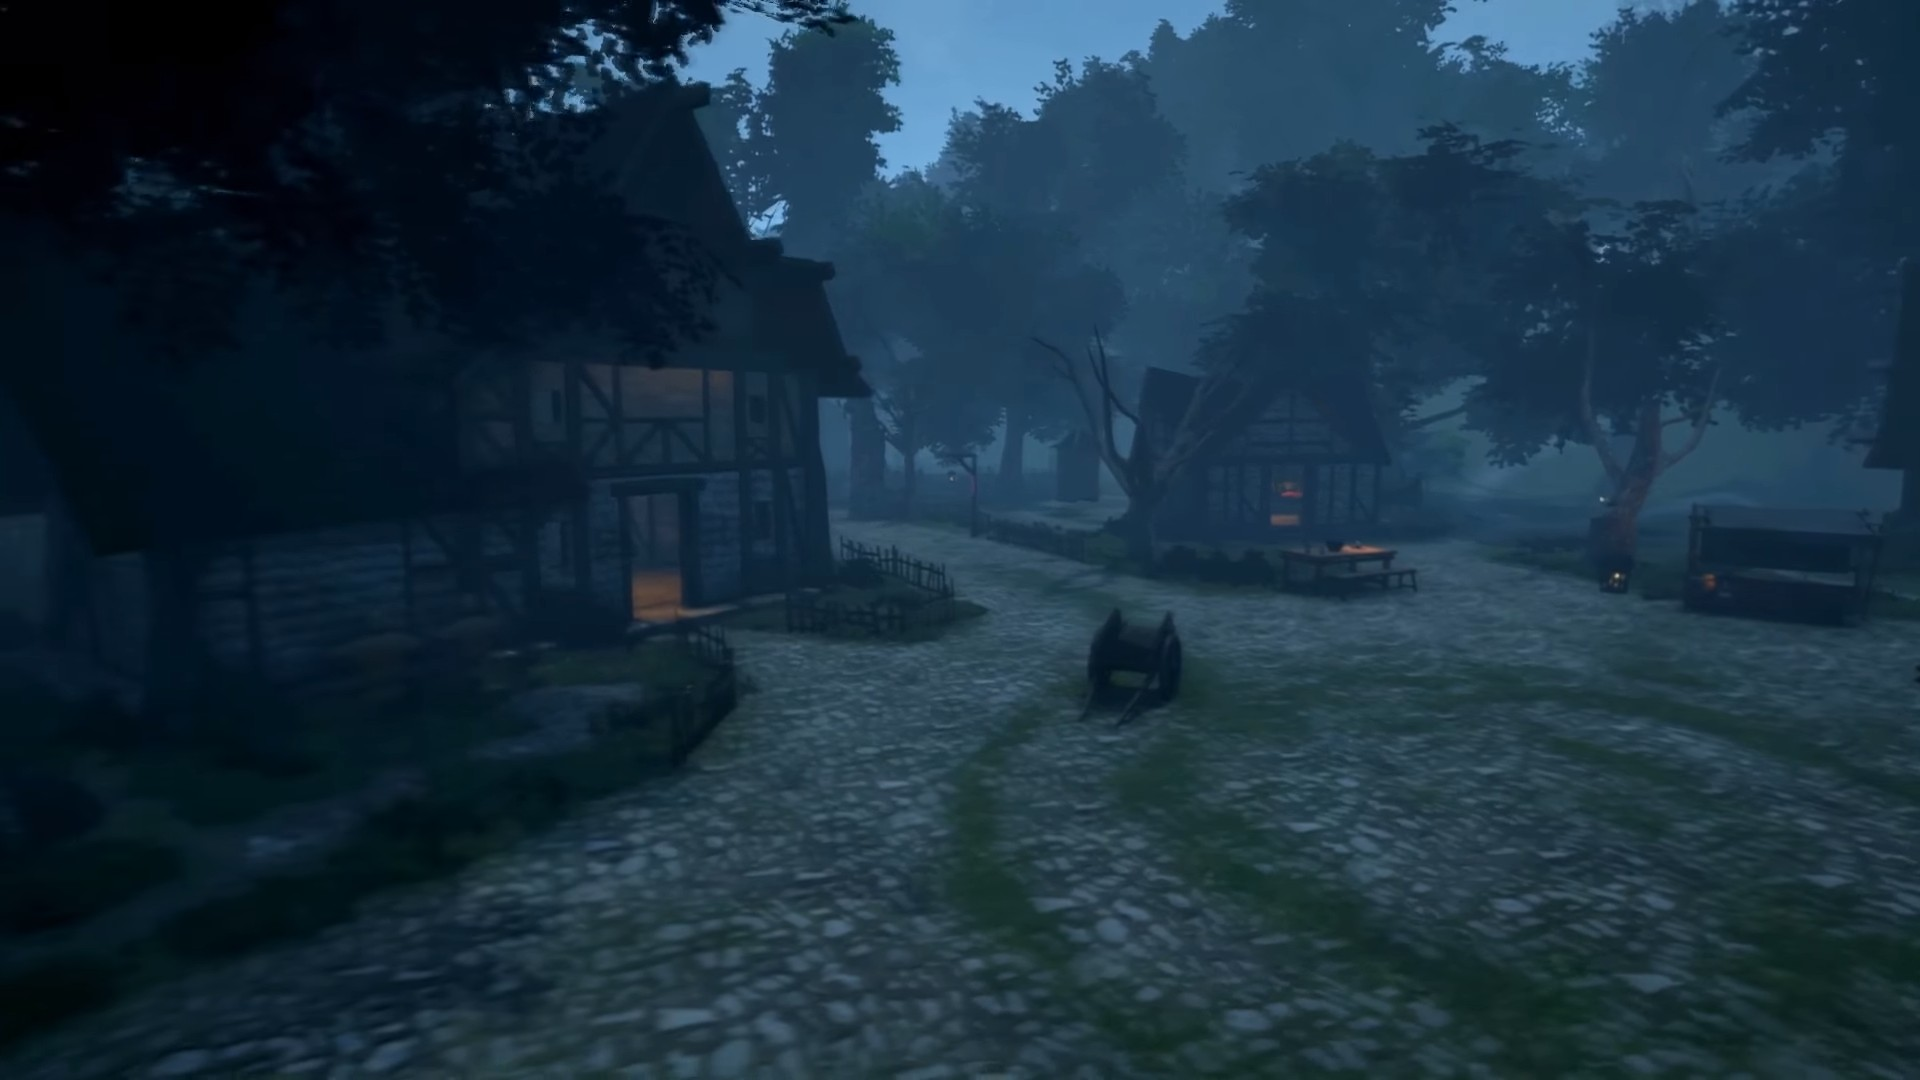 'World of Warcraft' in Unreal Engine 4 Looks Fancy, But It's not Better